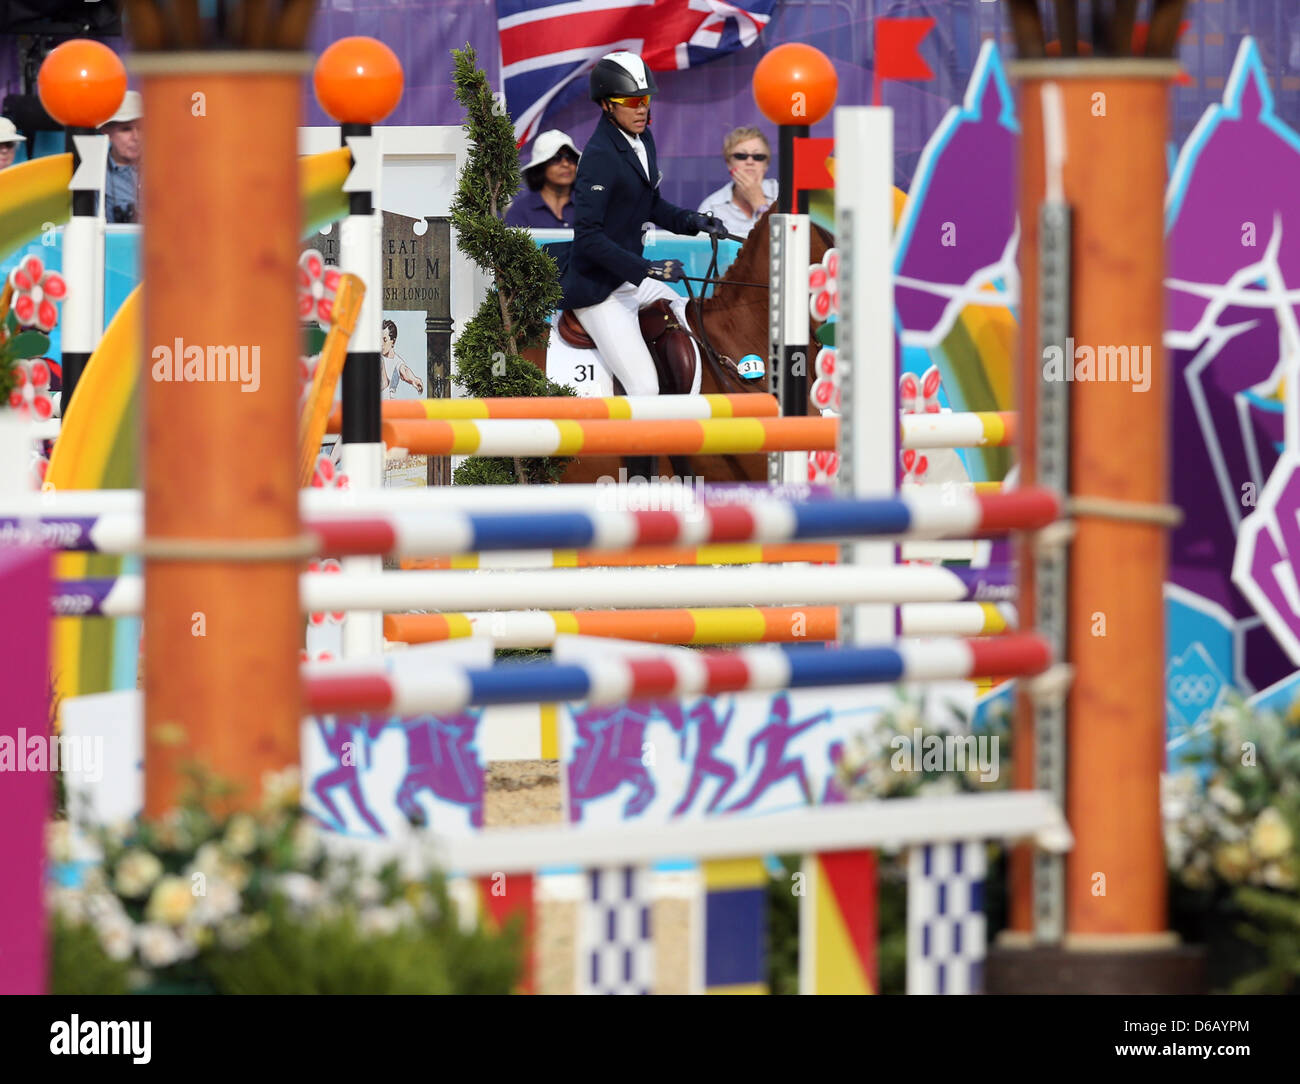 Dennis Bowsher of USA in action during the Men's Modern Pentathlon Riding Show Jumping event in Greenwich Park - Stock Image